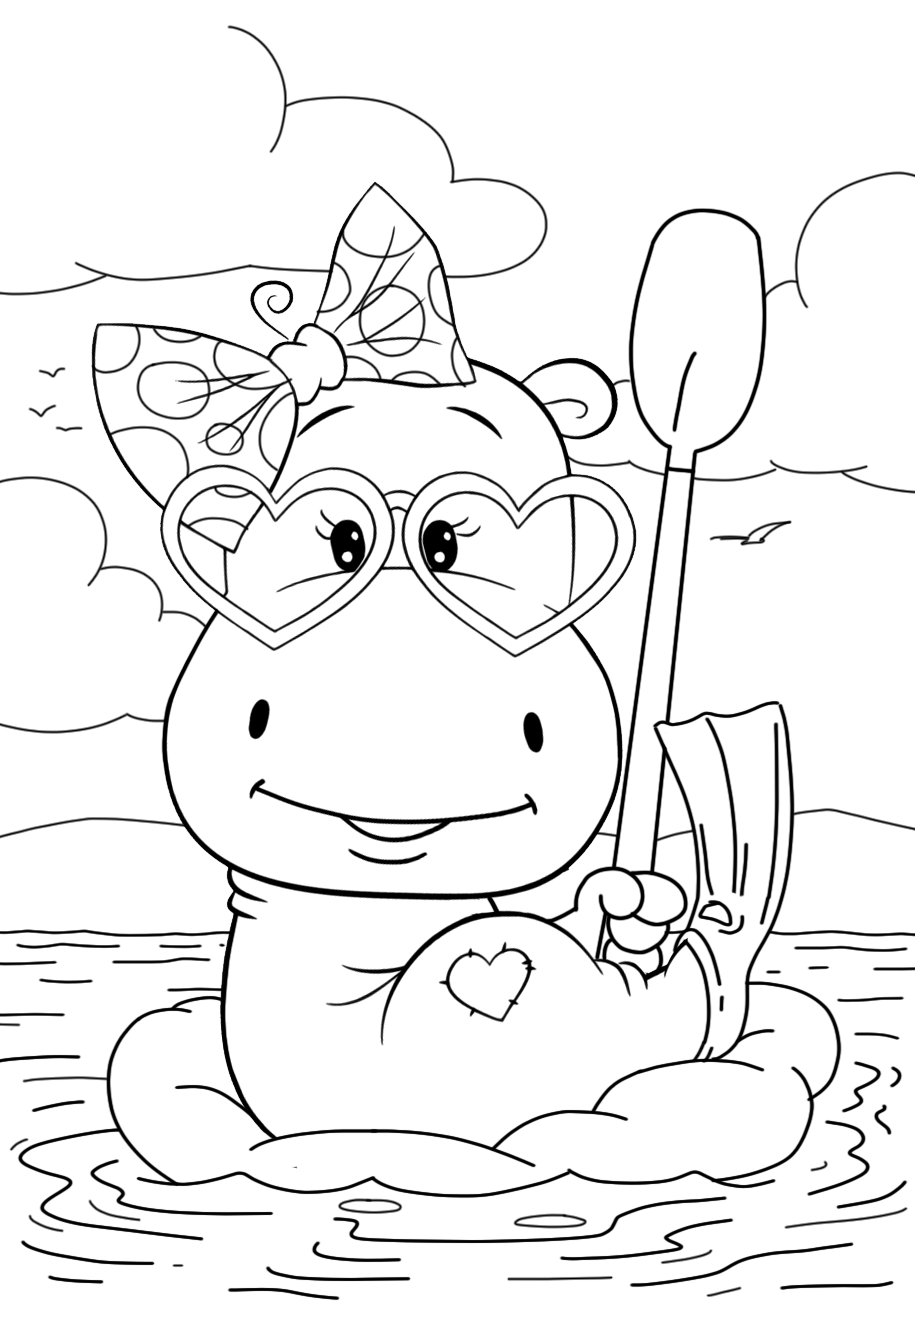 hippo coloring happy hippo coloring page hippo coloring